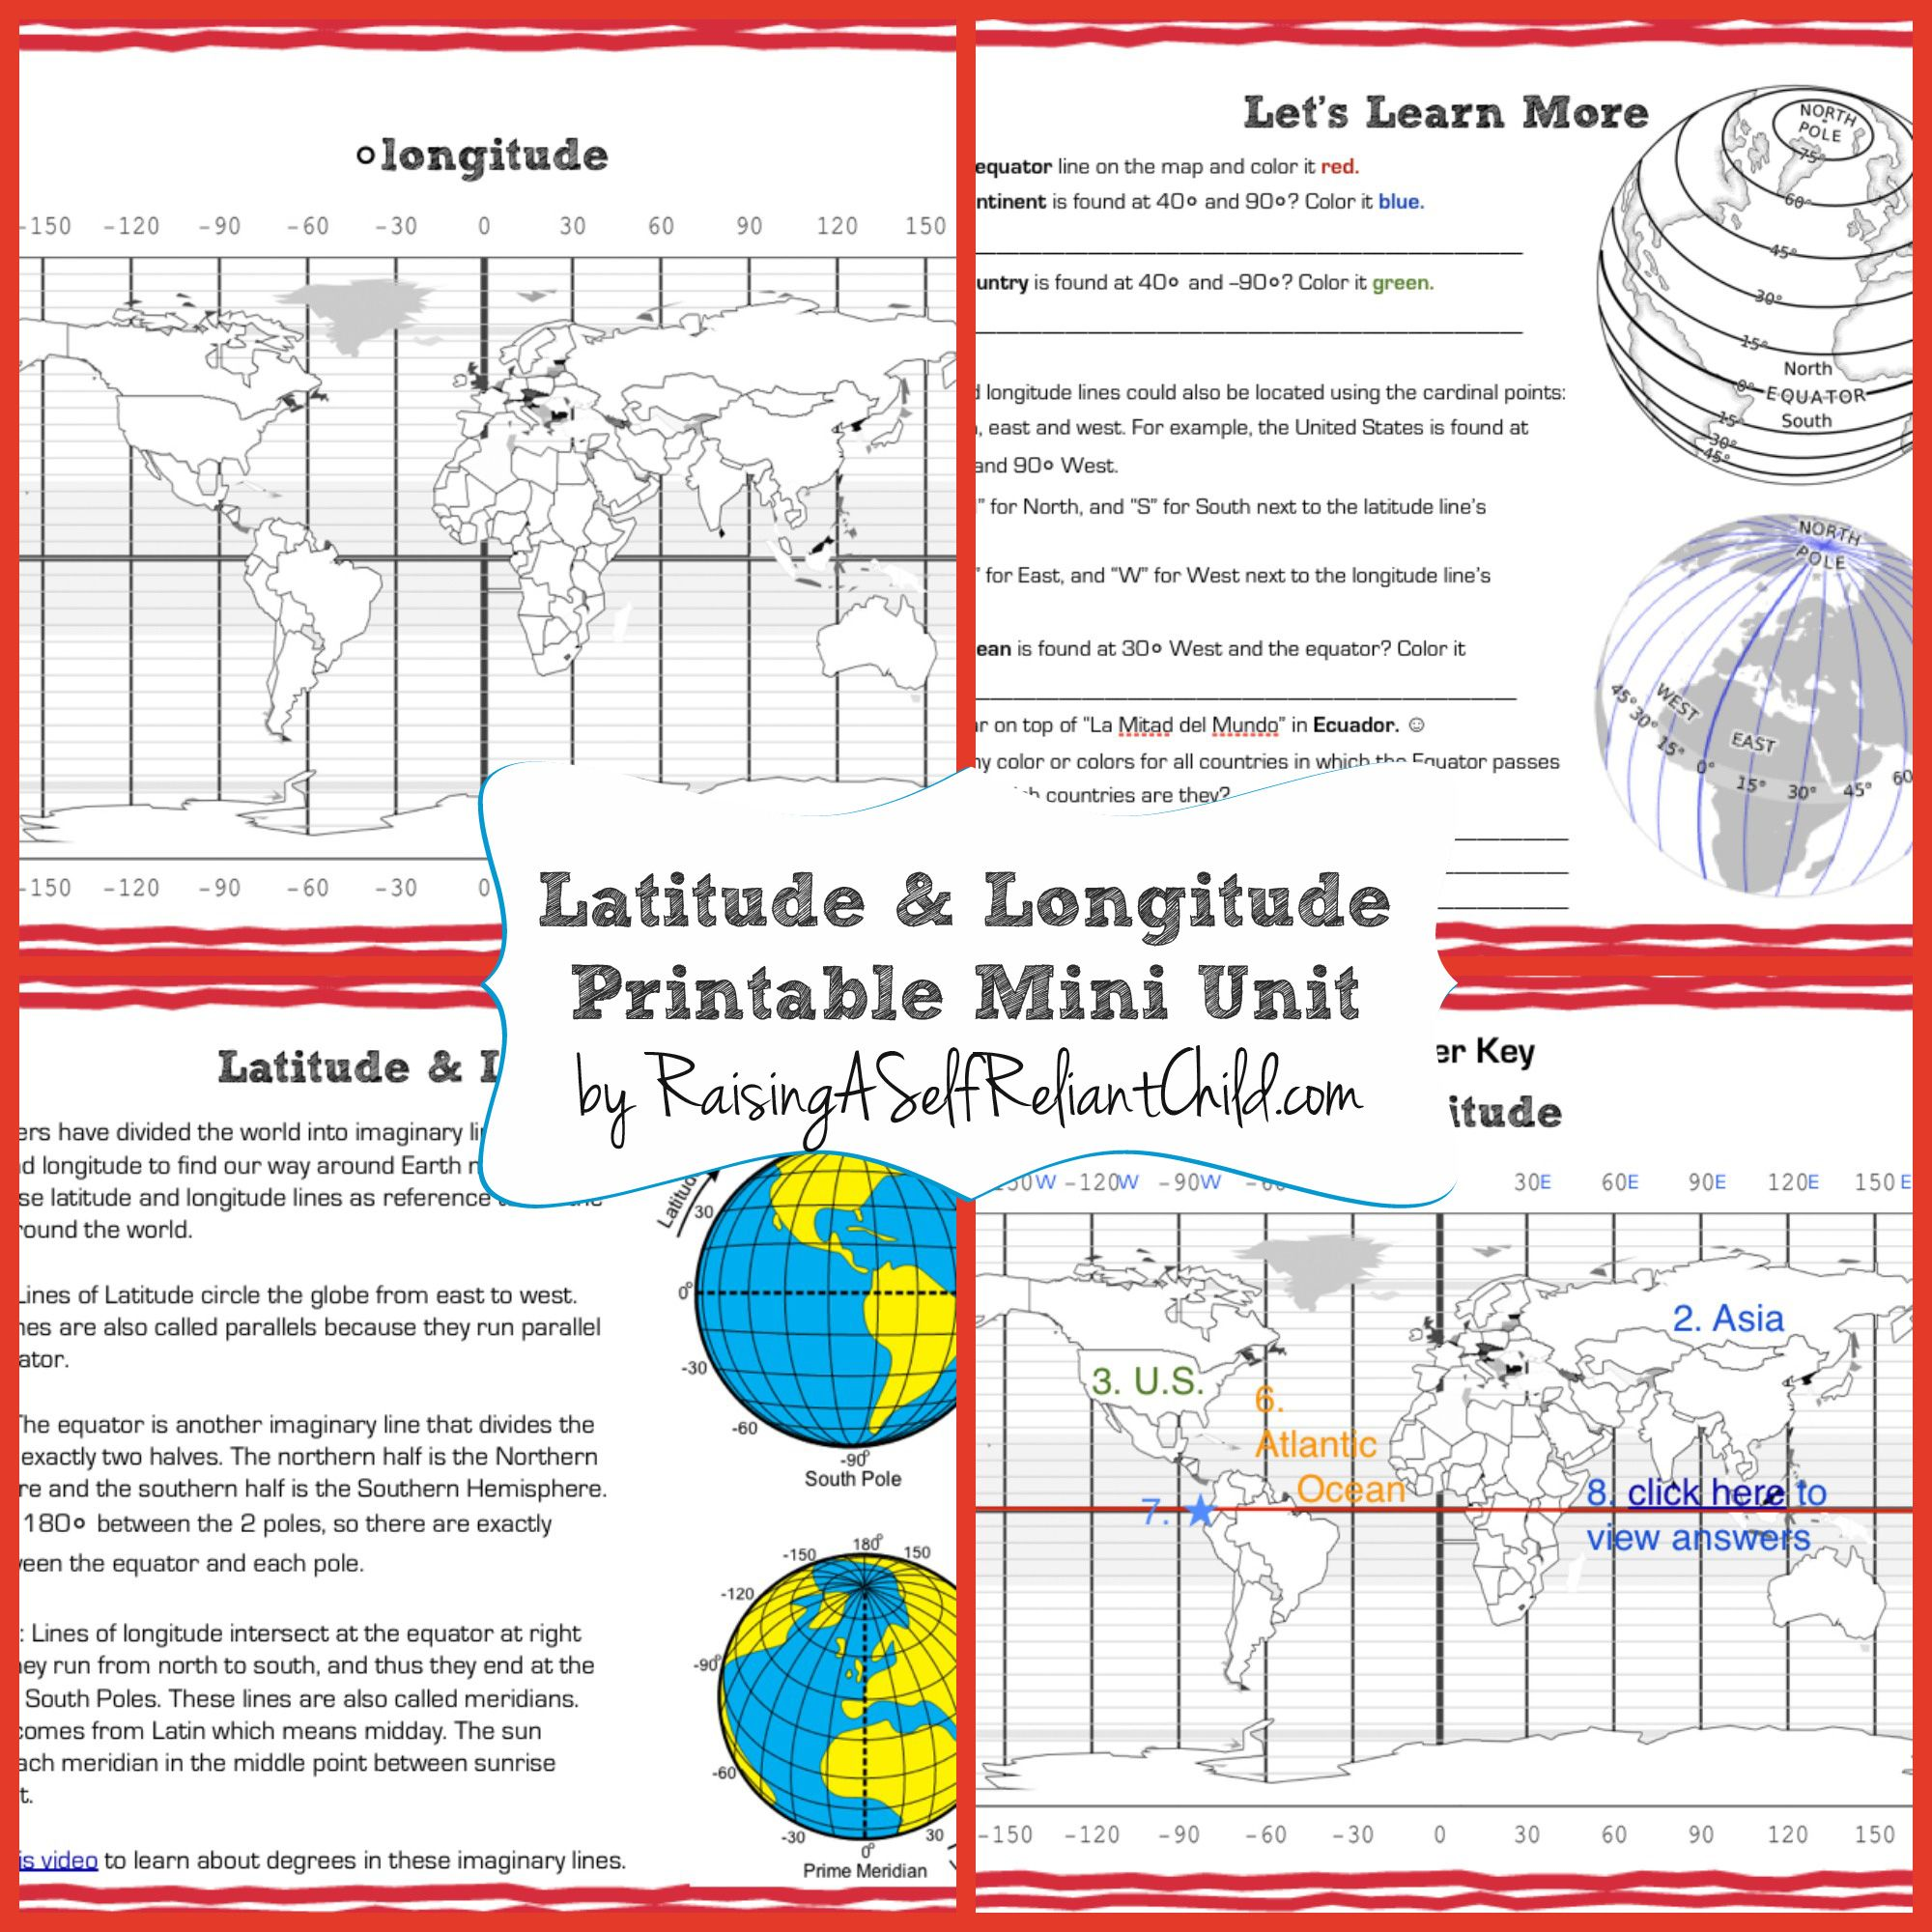 Free Printable Mini Unit Latitude and Longitude for Kids The